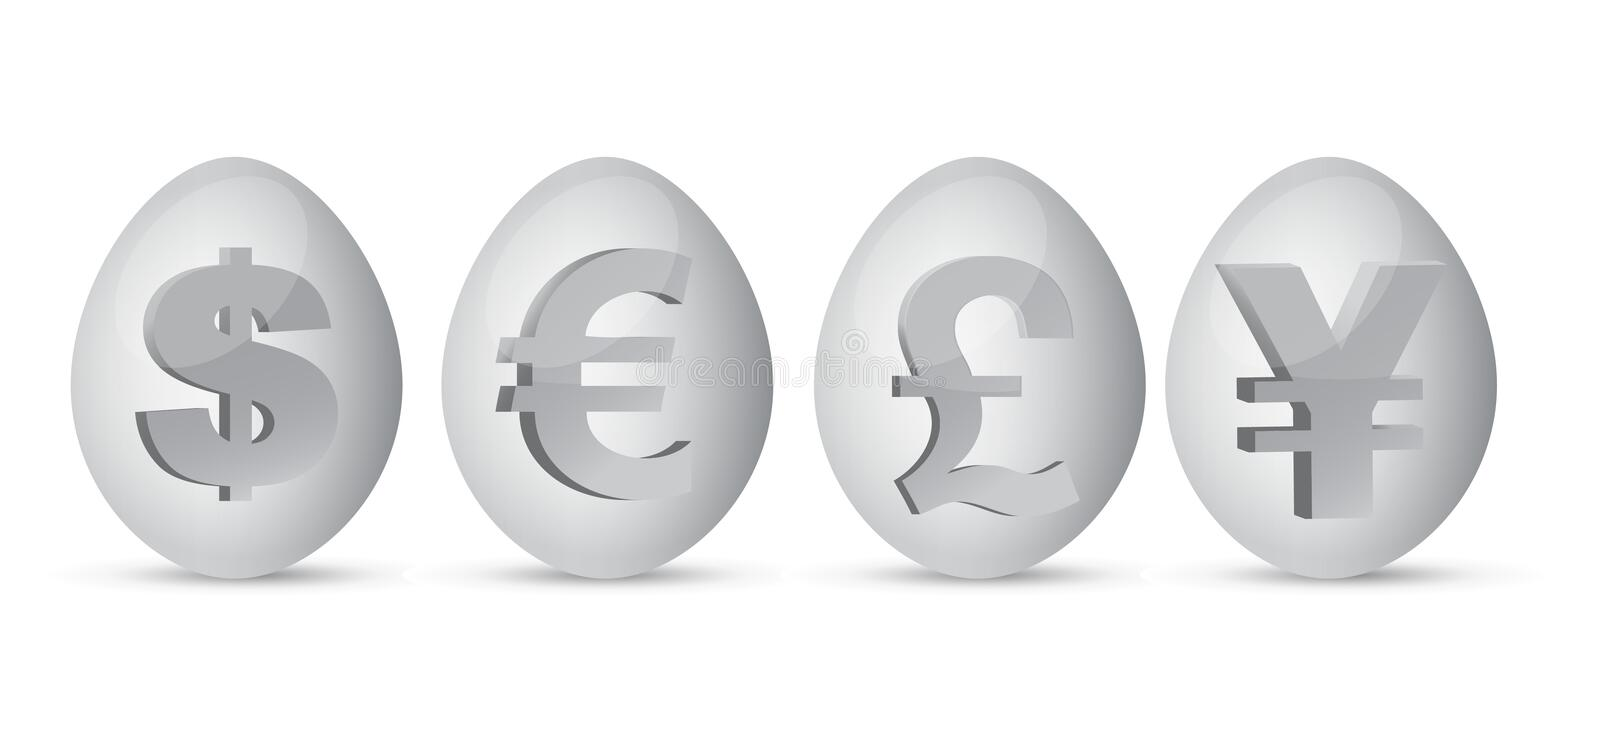 Download Currency eggs illustration stock vector. Image of concept - 24842713